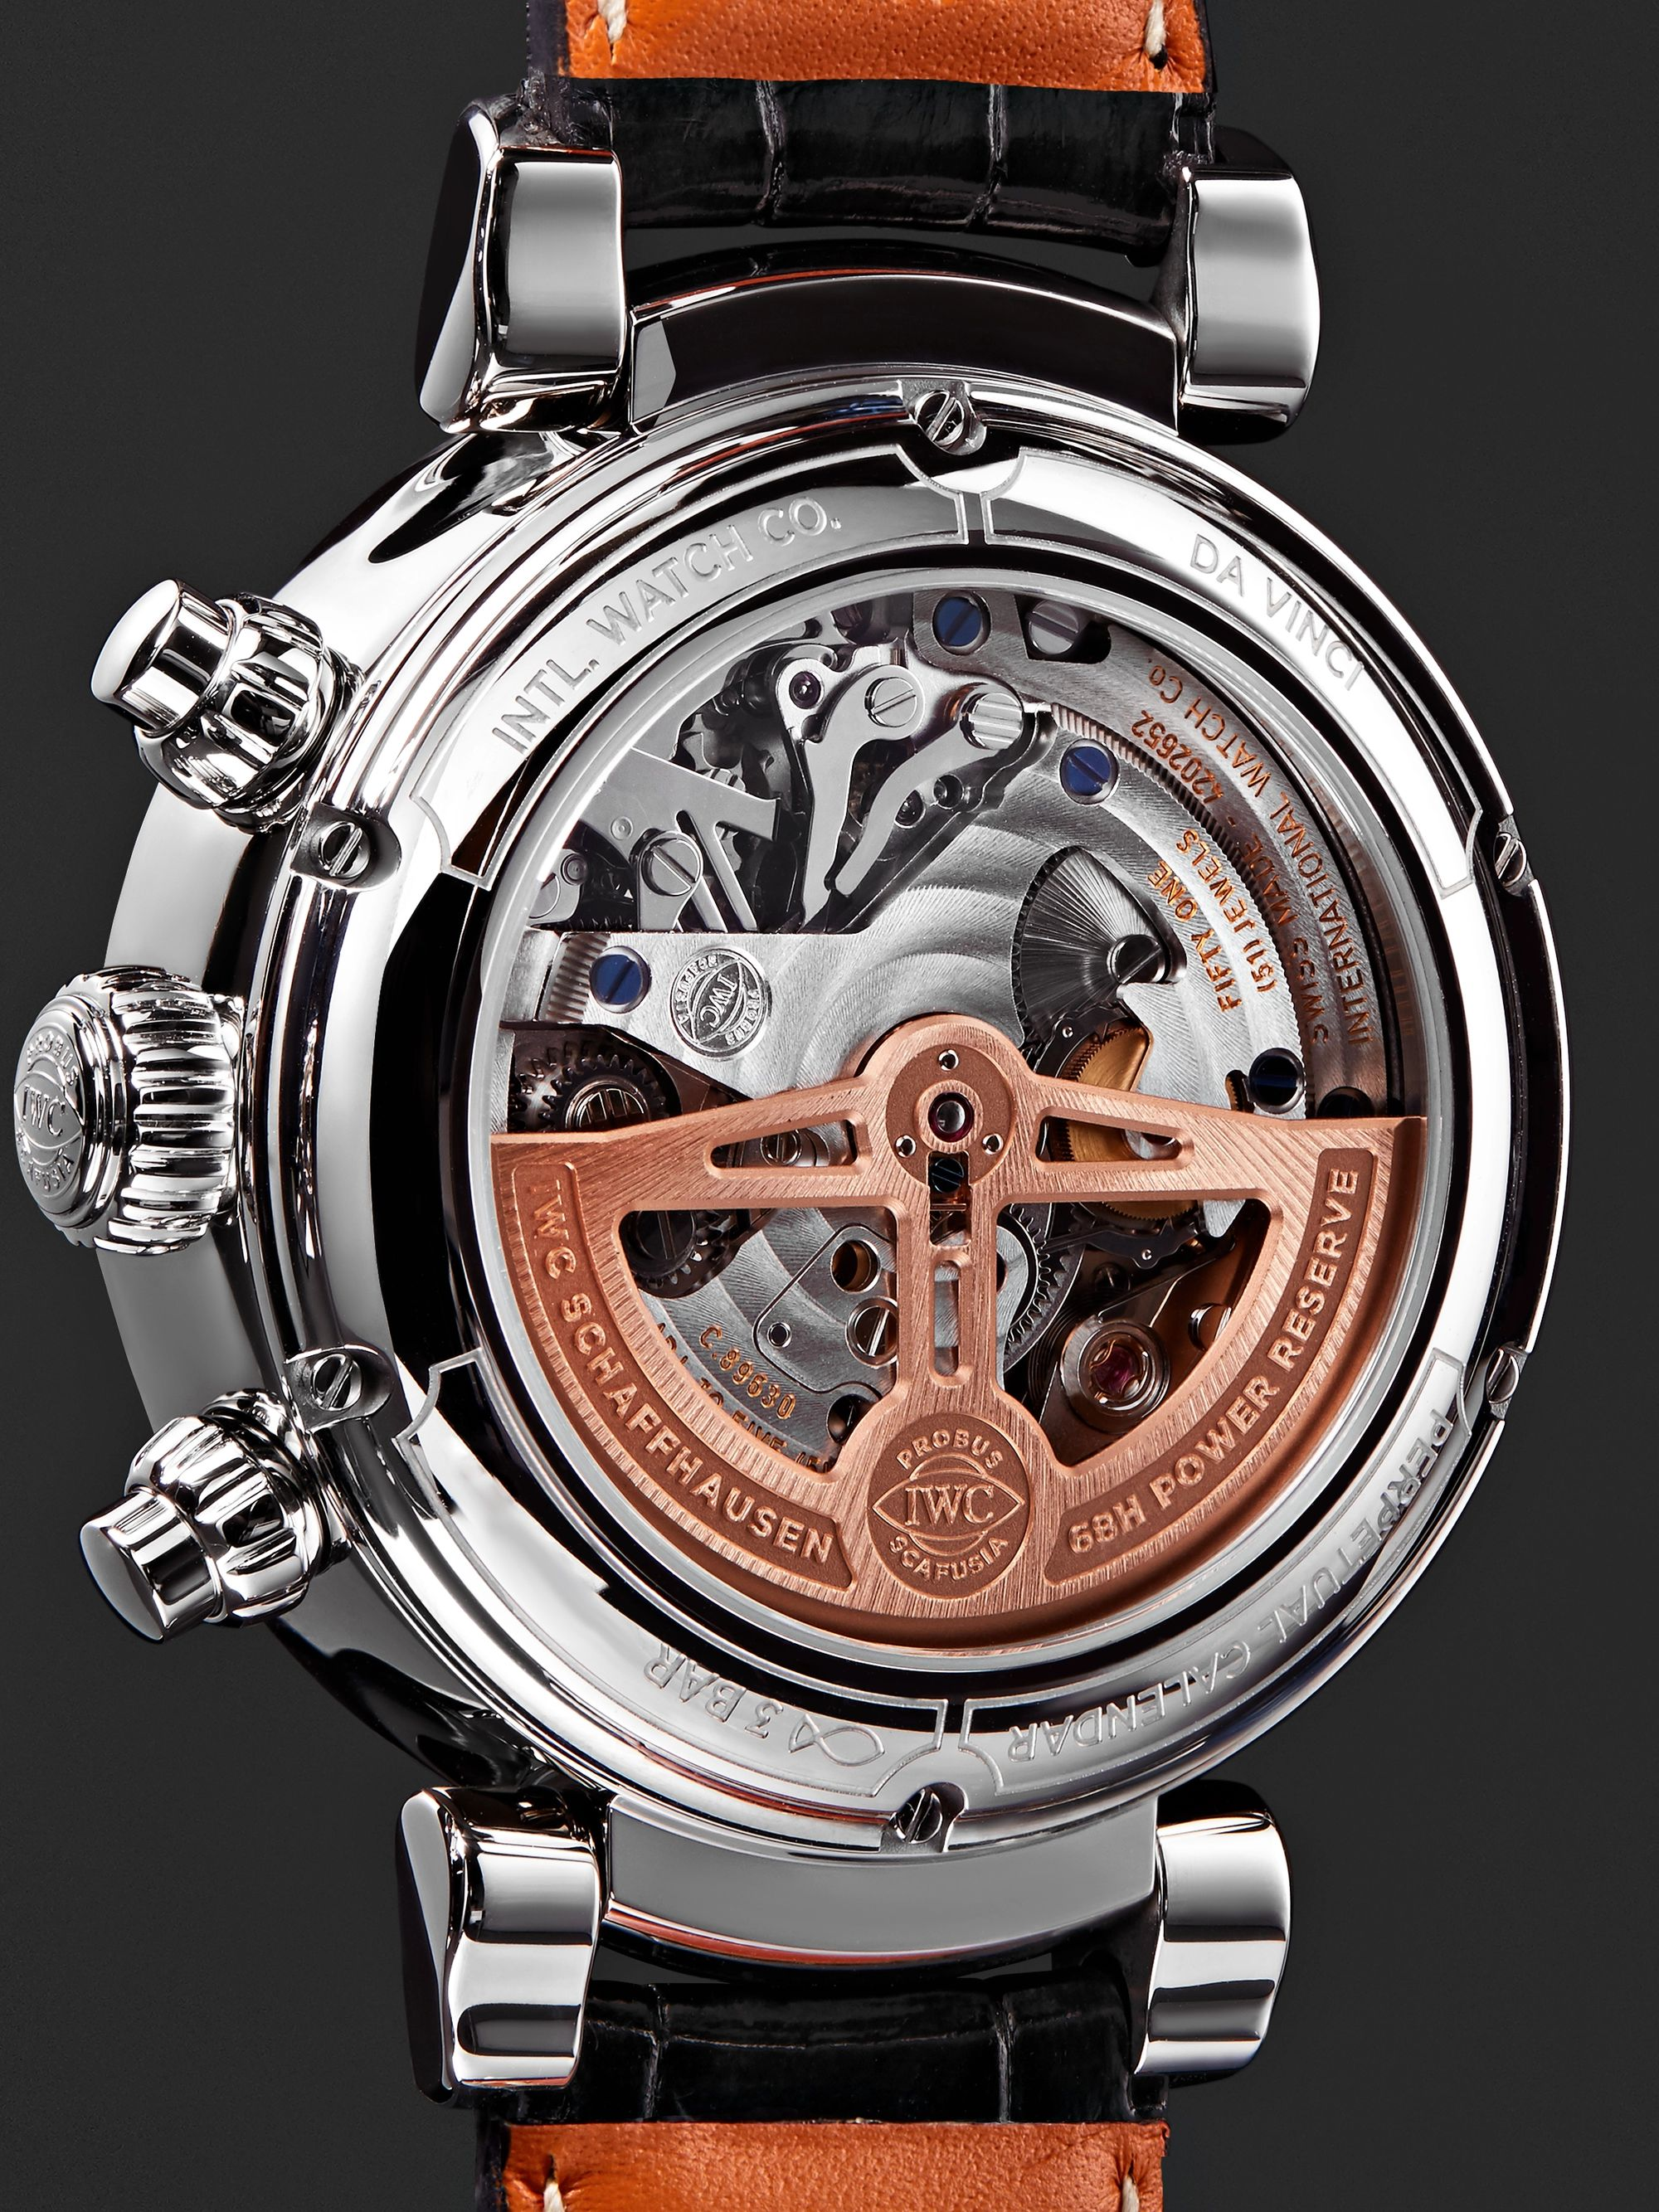 IWC SCHAFFHAUSEN Da Vinci Perpetual Calendar Chronograph 43mm Stainless Steel and Alligator Watch, Ref. No. IW392103